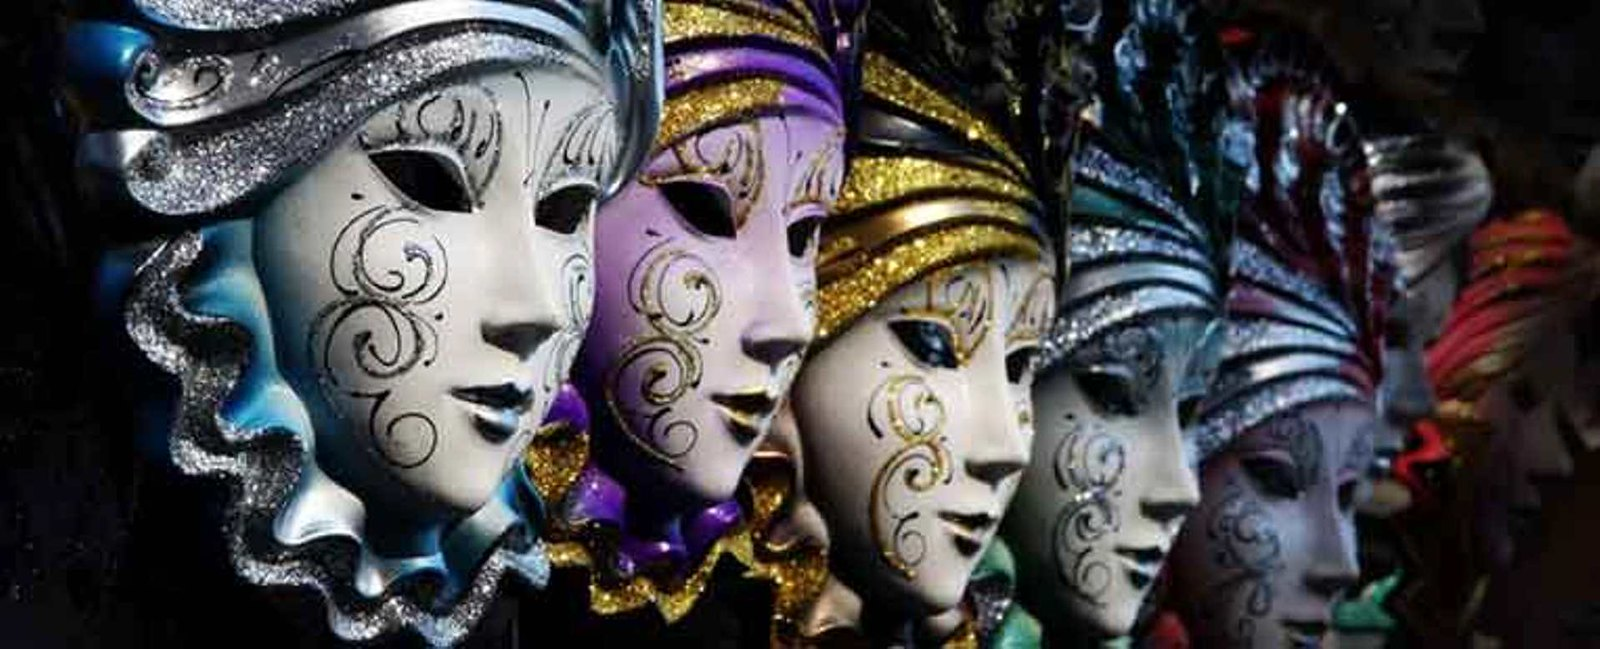 ________, celebrated just before the lent season, is a conglomeration of French and Tamil Culture. - Masquerade Festival